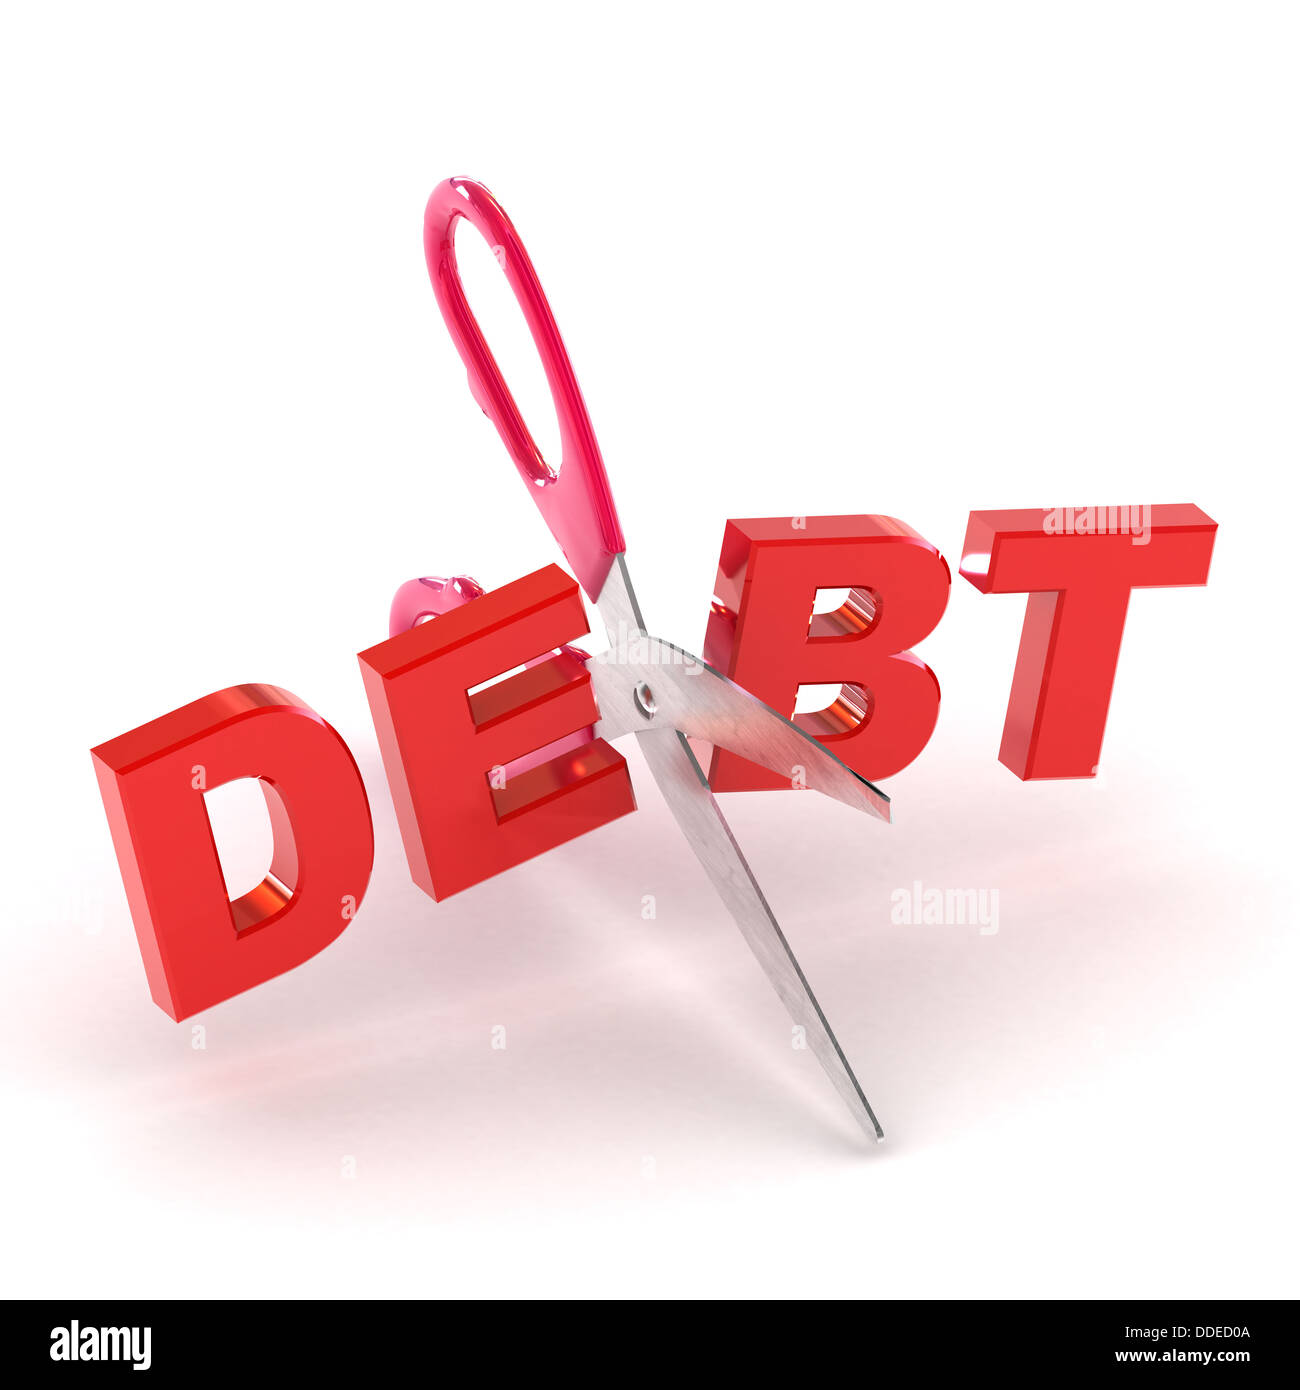 A Colourful 3d Rendered Cutting Debt Concept Illustration - Stock Image